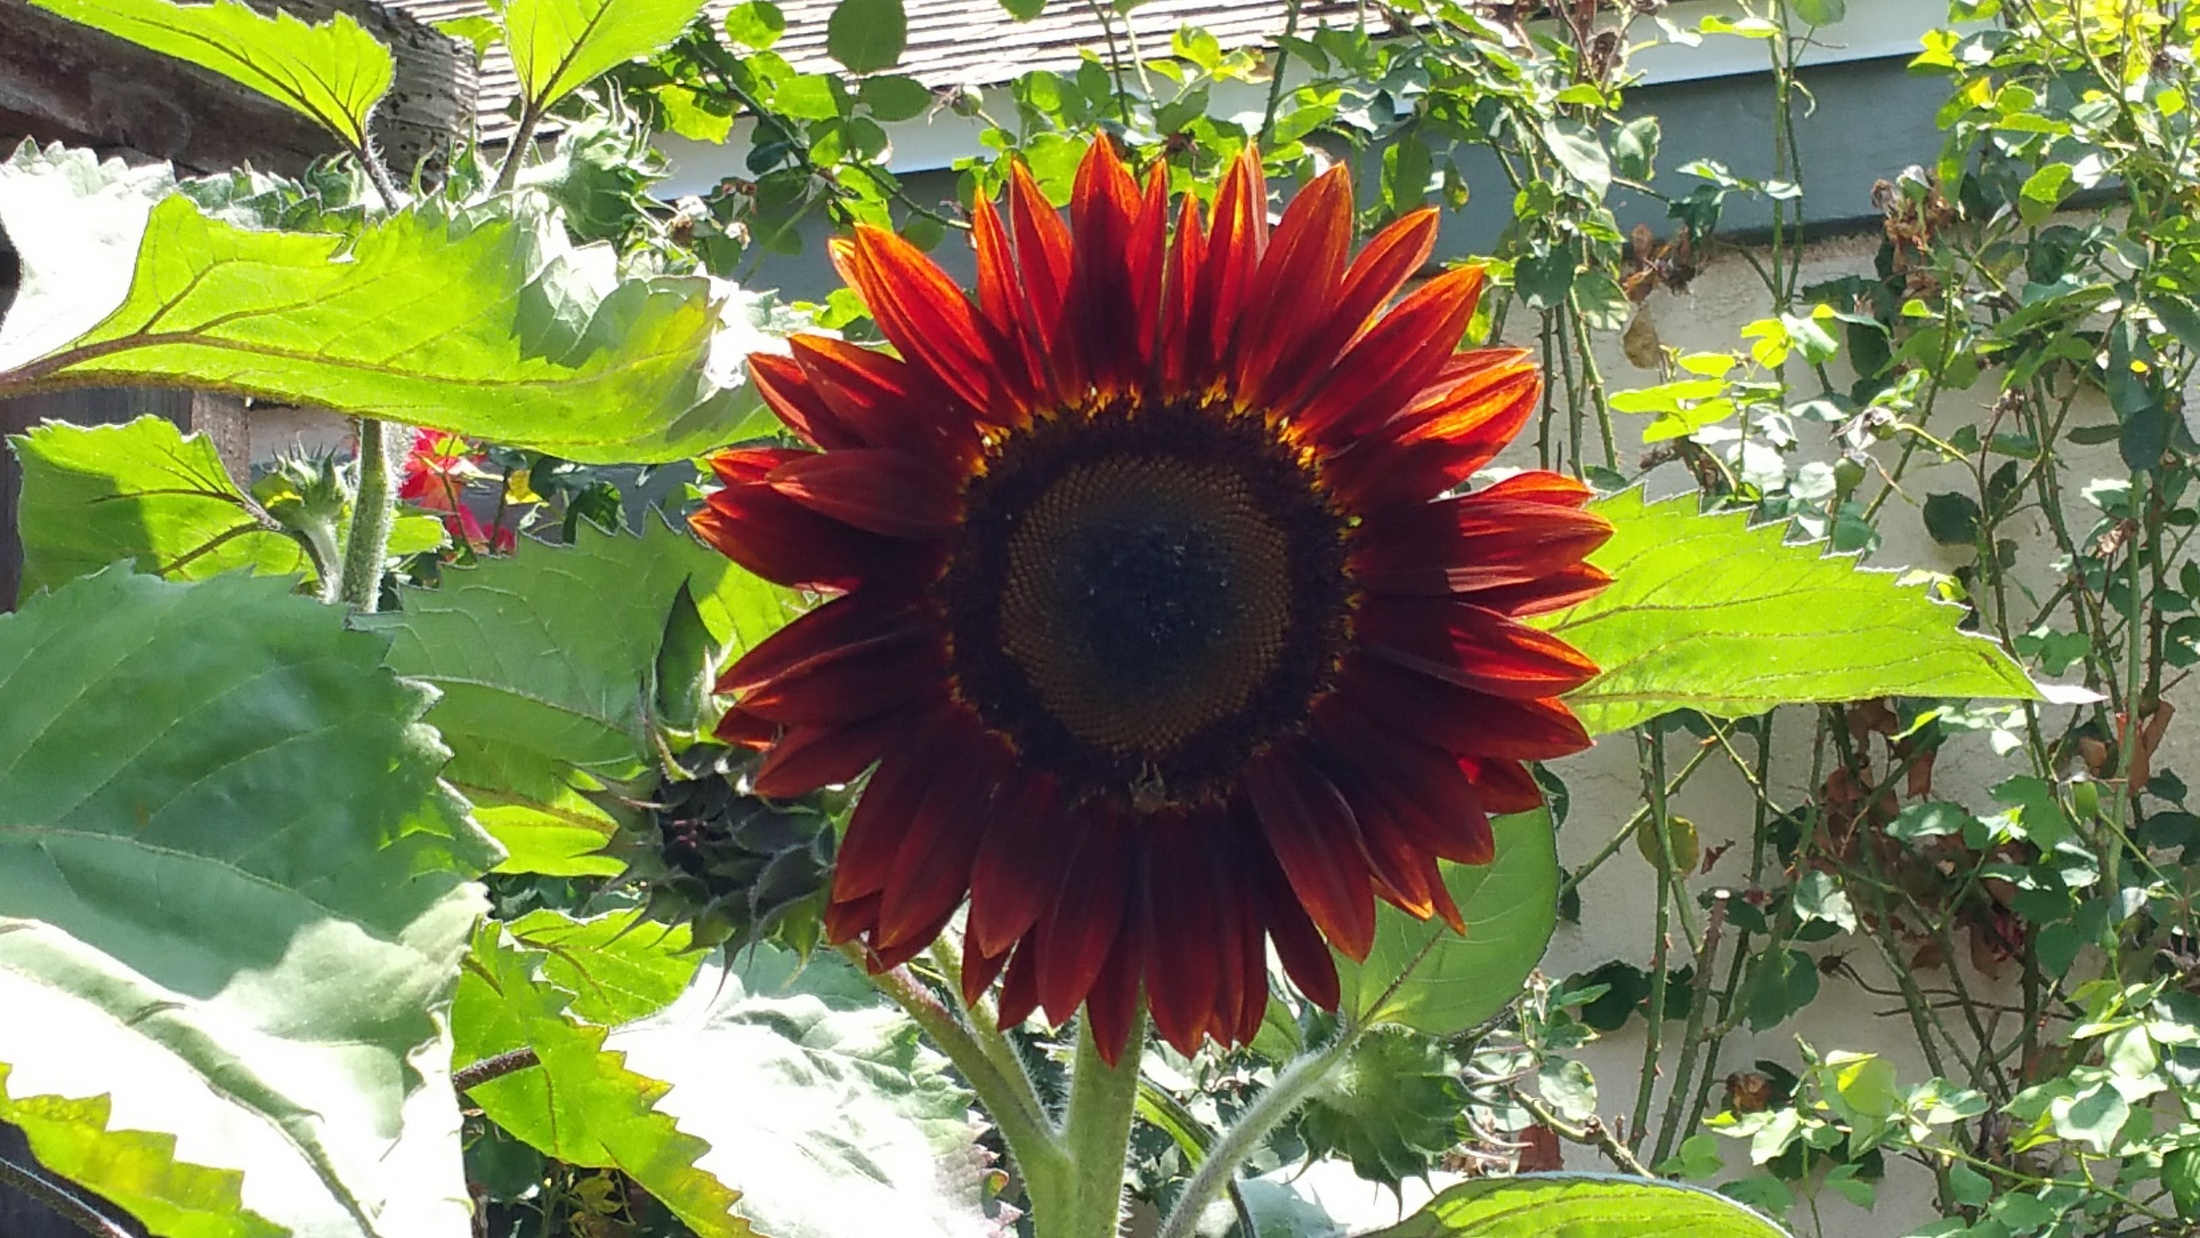 Photo of Moulin Rouge red sunflower